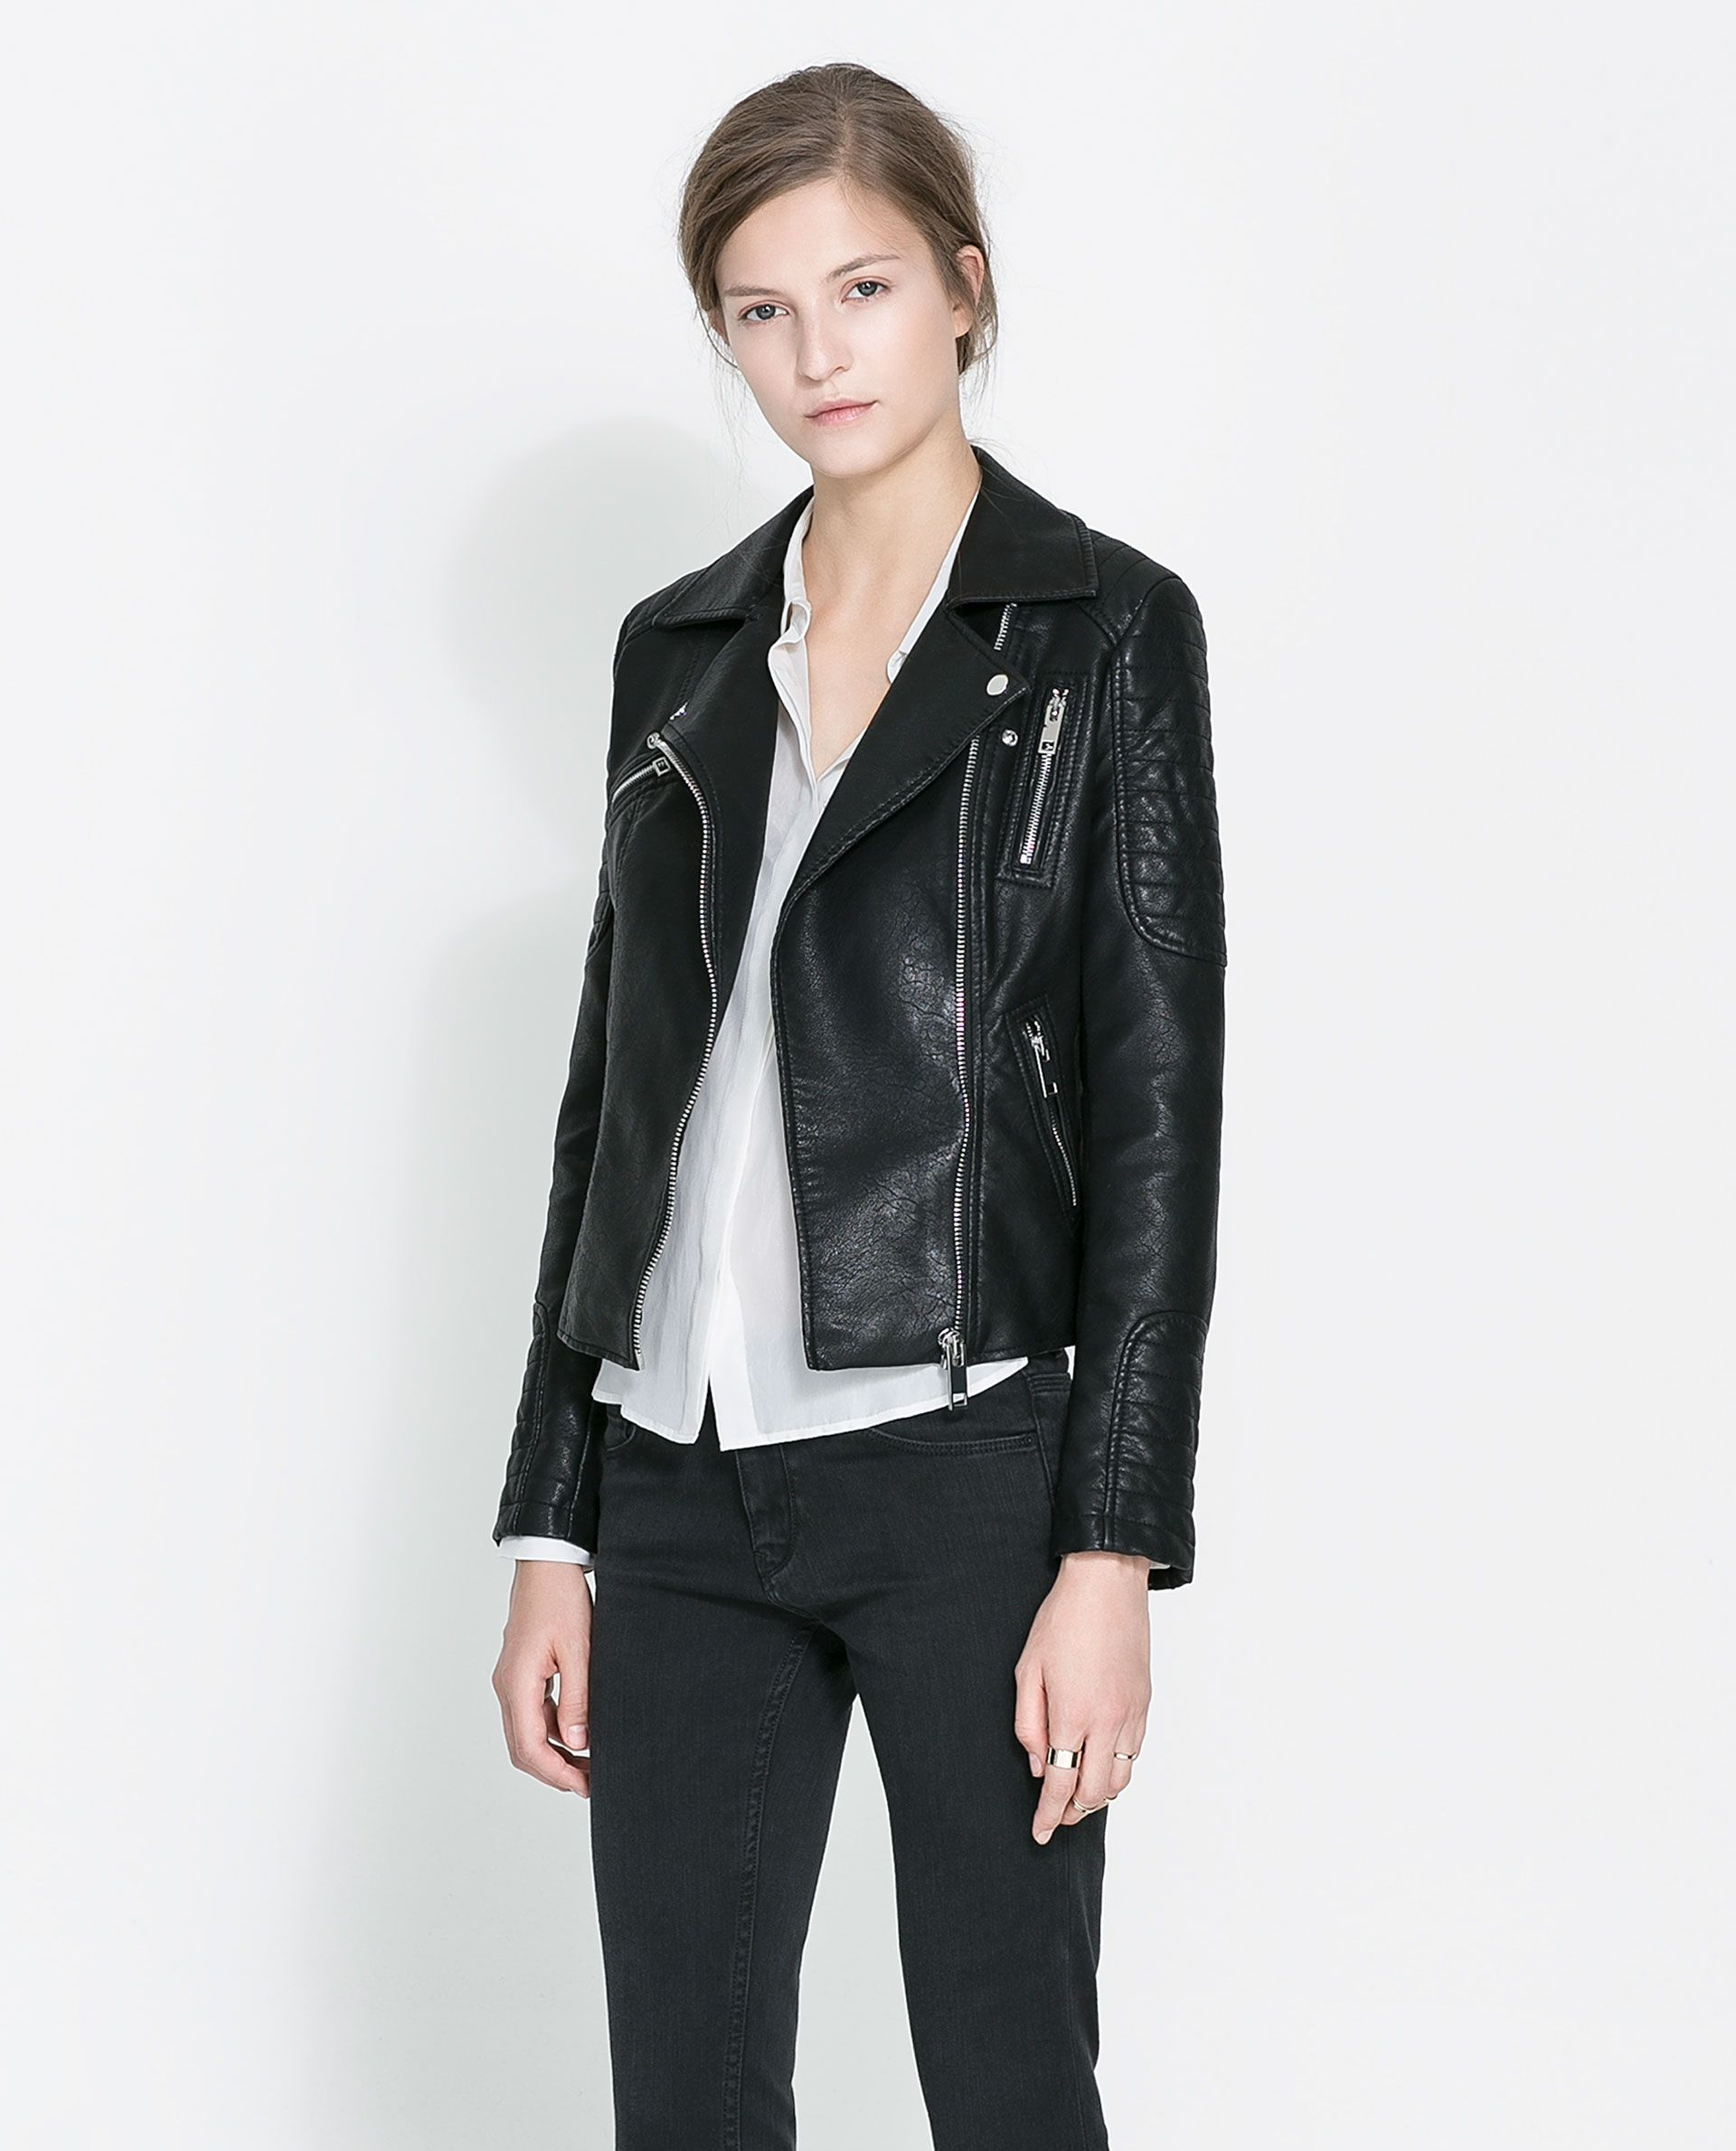 ZARA WOMAN MOTORCYCLE JACKET WITH ZIPS So Fresh and